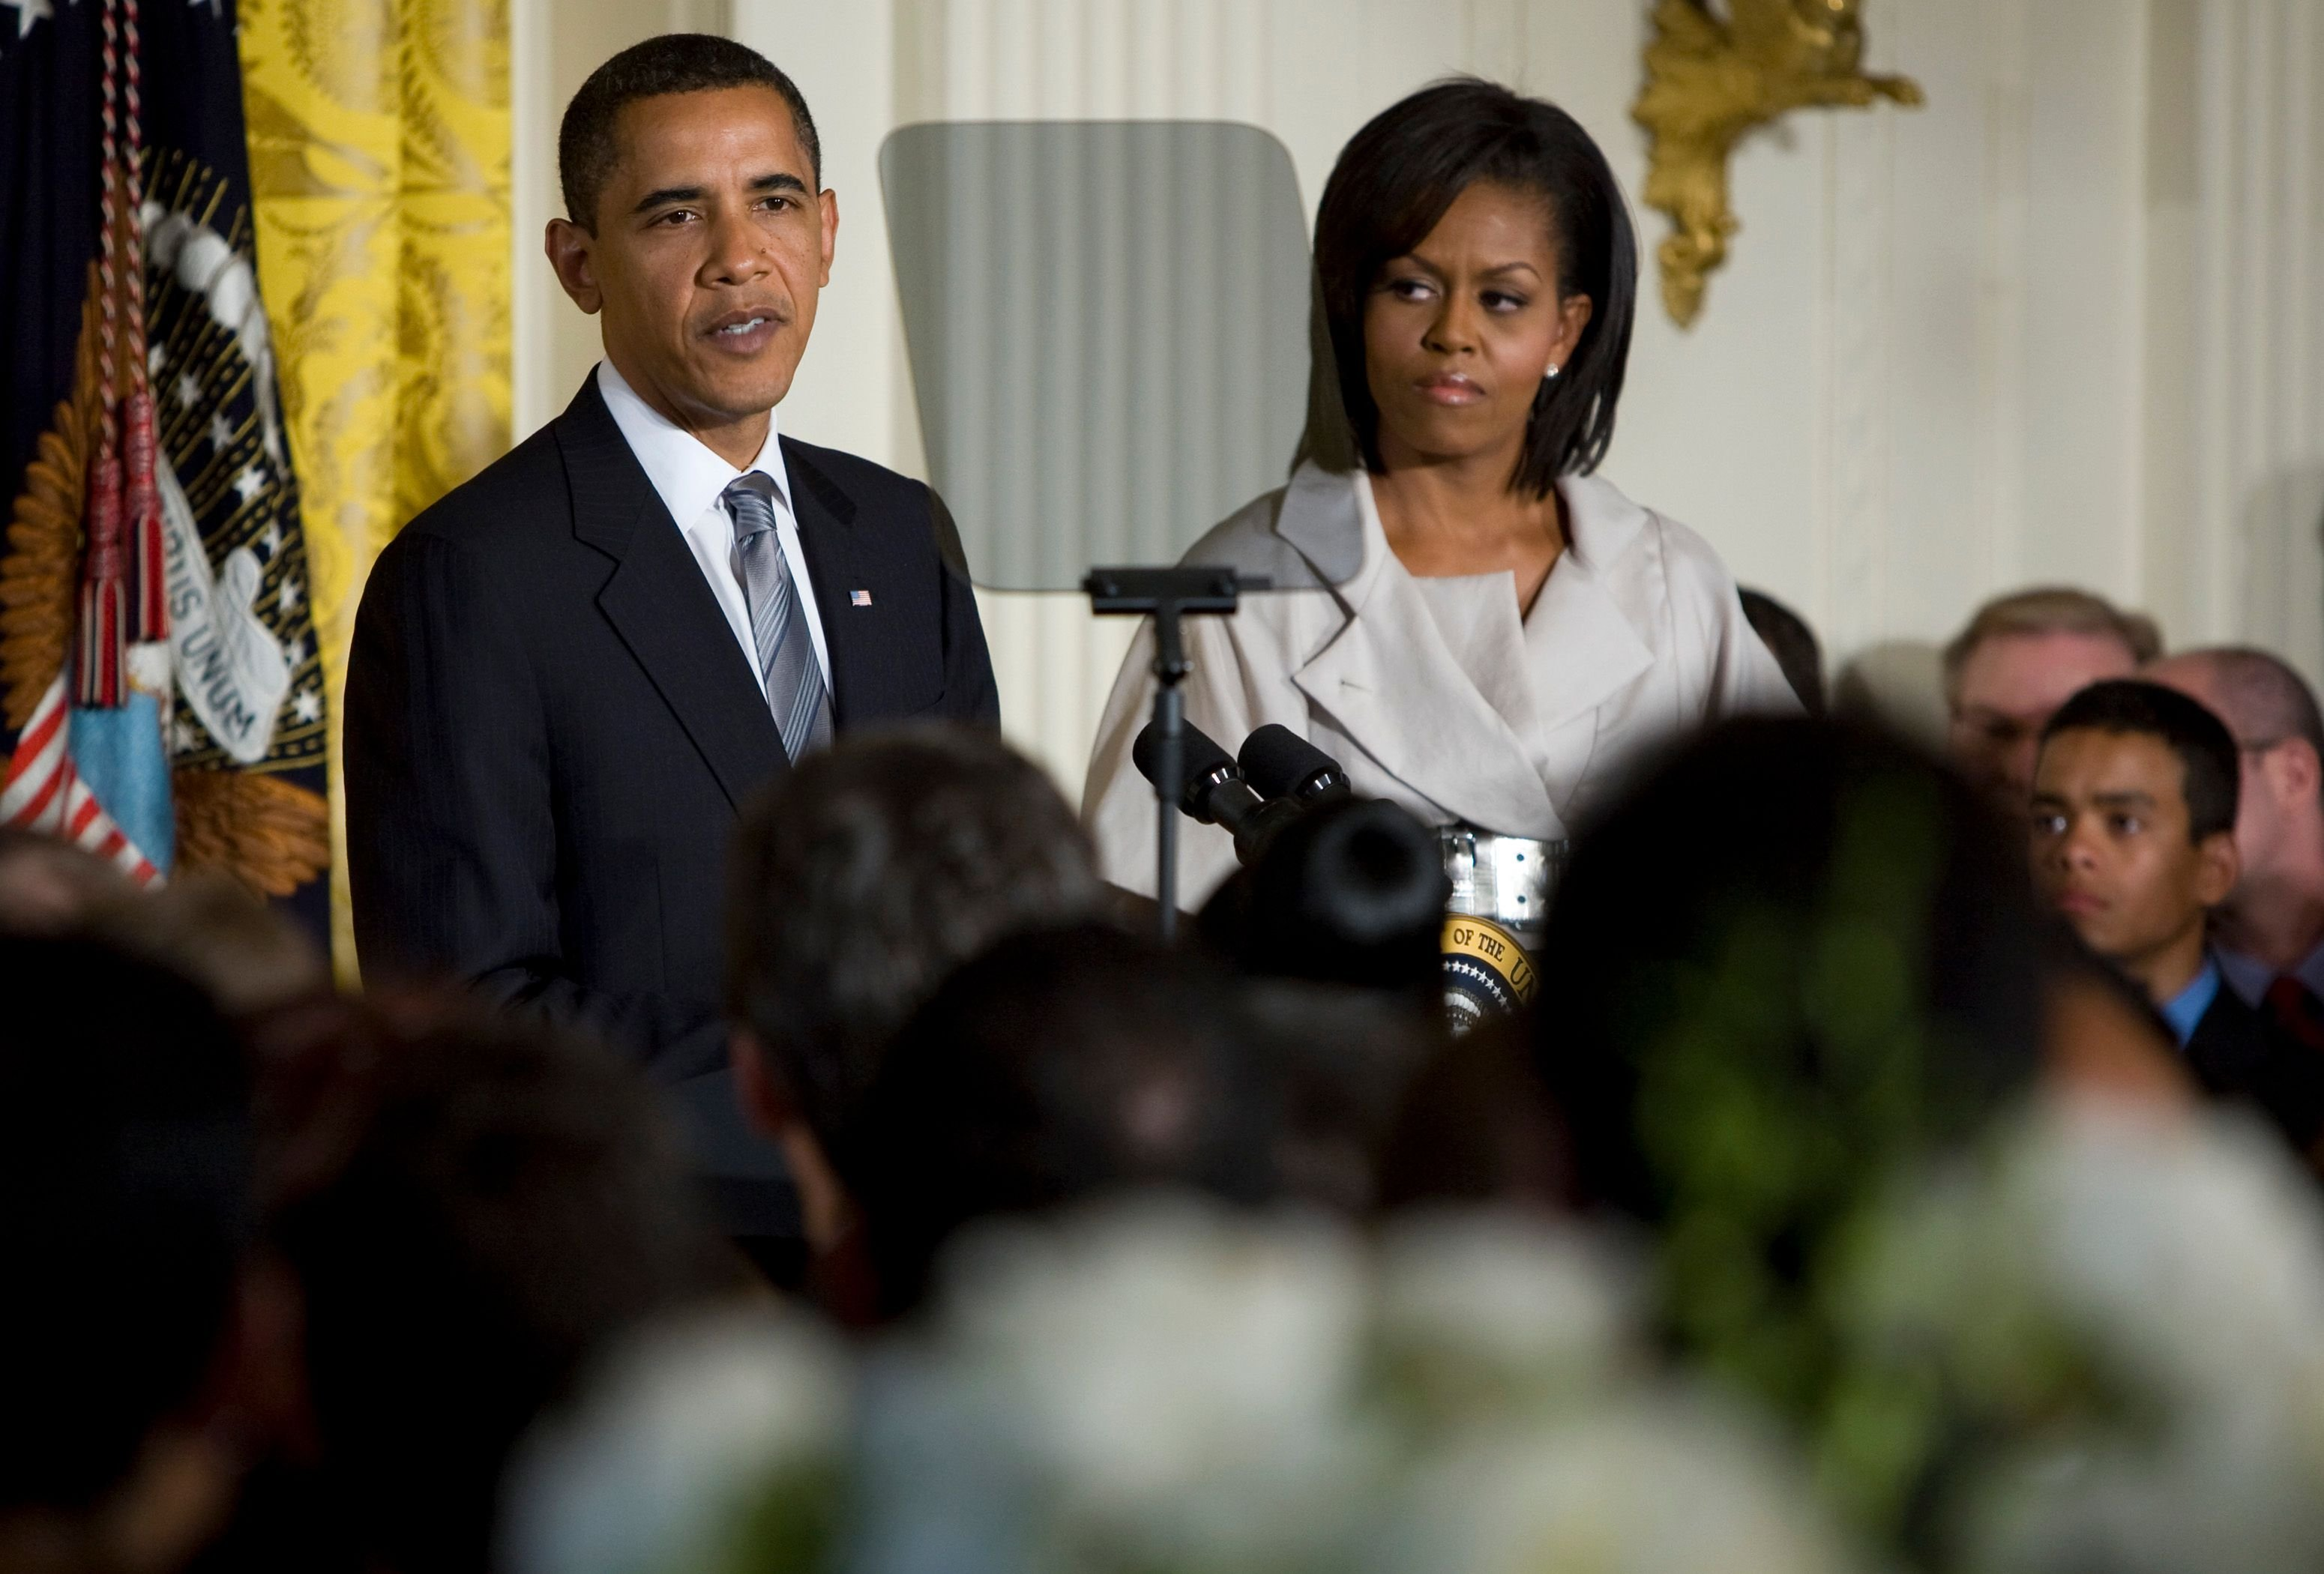 President Barack Obama and First Lady Michelle Obama host a reception for Lesbian Gay Bisexual Transgender Pride Month atthe White House on June 29, 2009, in Washington, D.C. | Photo:Kristoffer Tripplaar-Pool/Getty Images